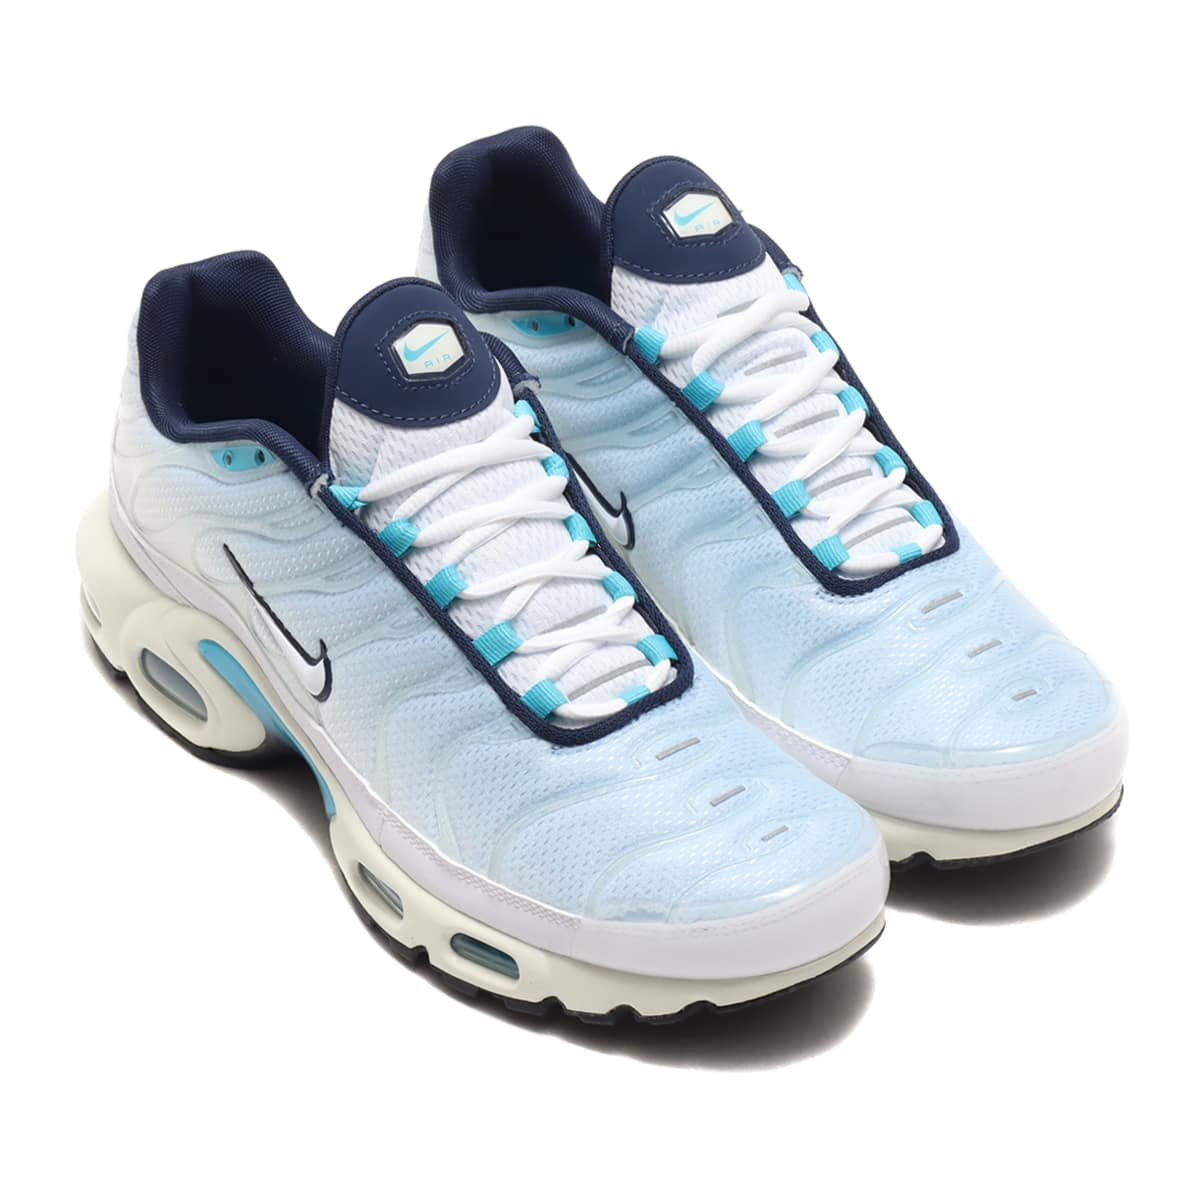 NIKE AIR MAX PLUS PSYCHIC BLUE/WHITE-MIDNIGHT NAVY-SAIL 21SU-I_photo_large